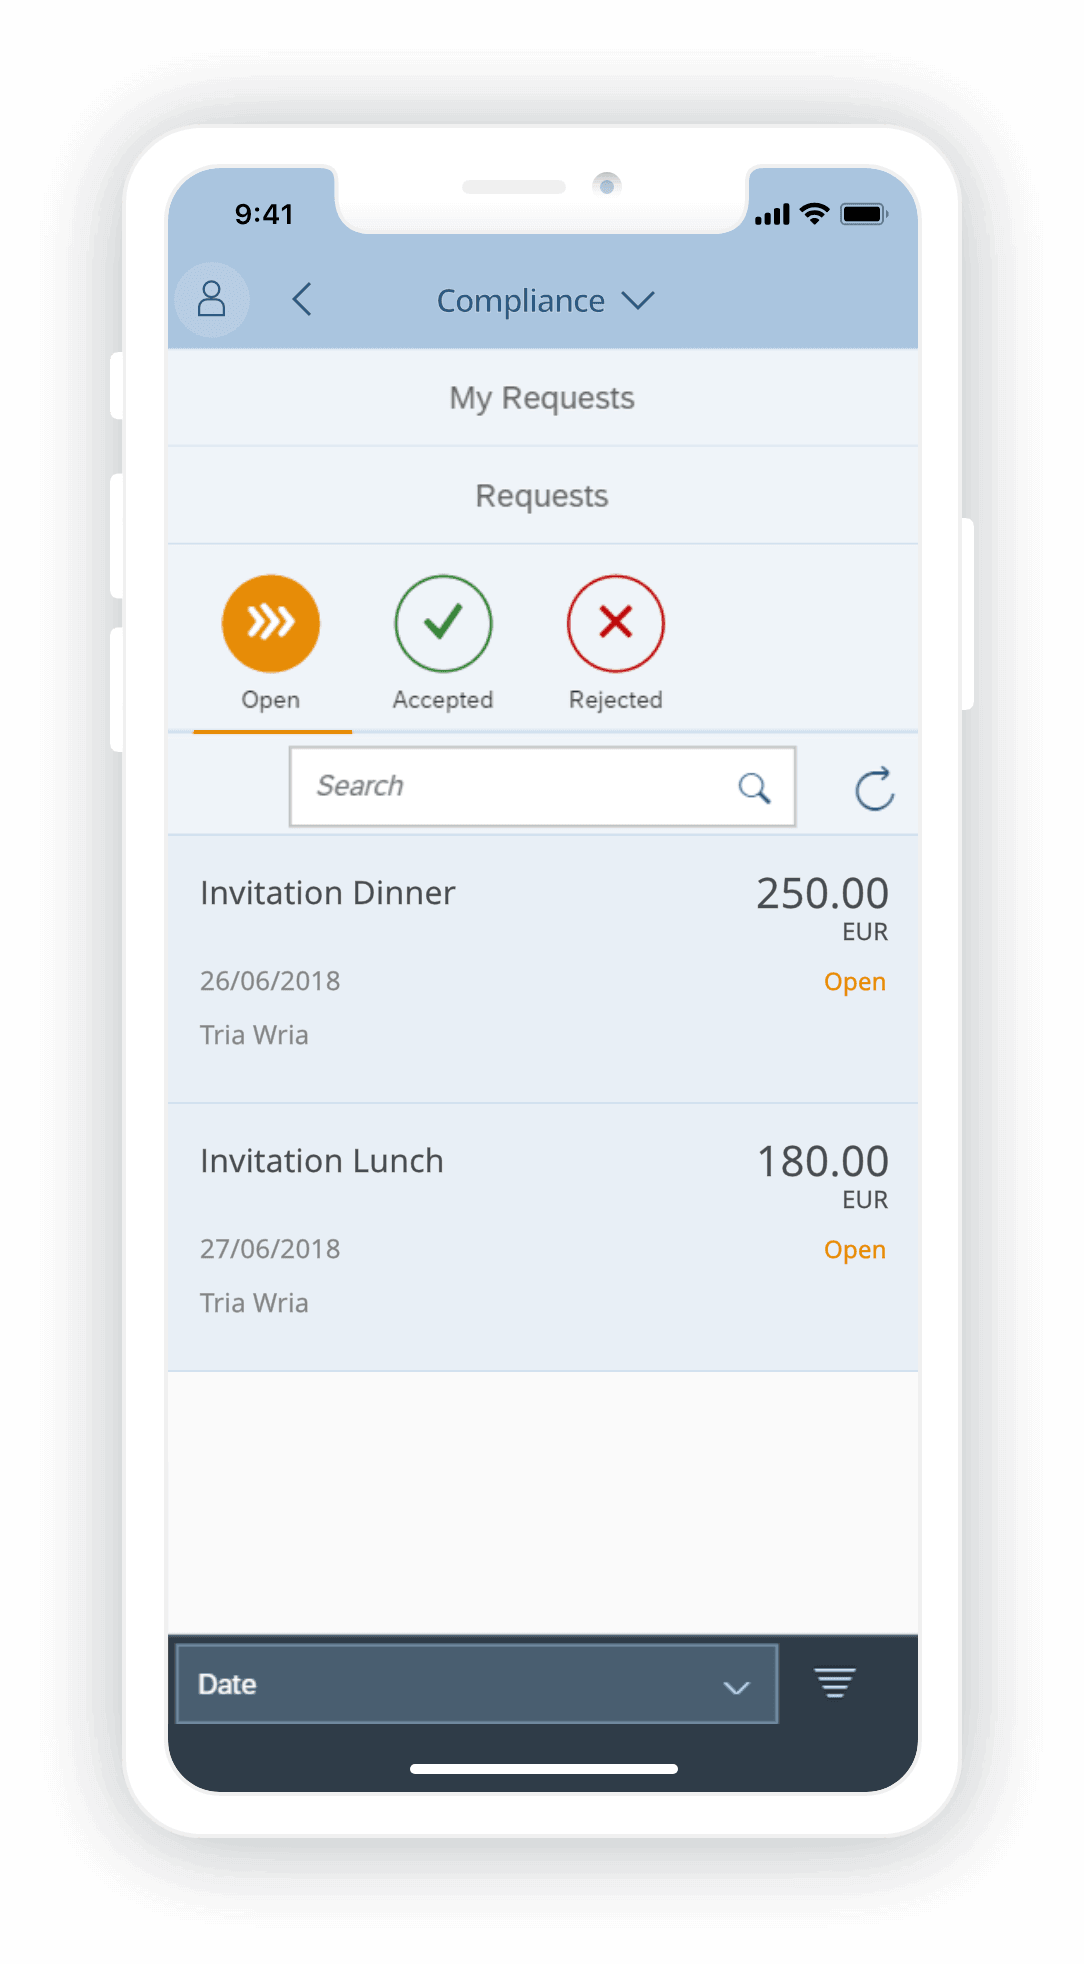 EASY Compliance Management app